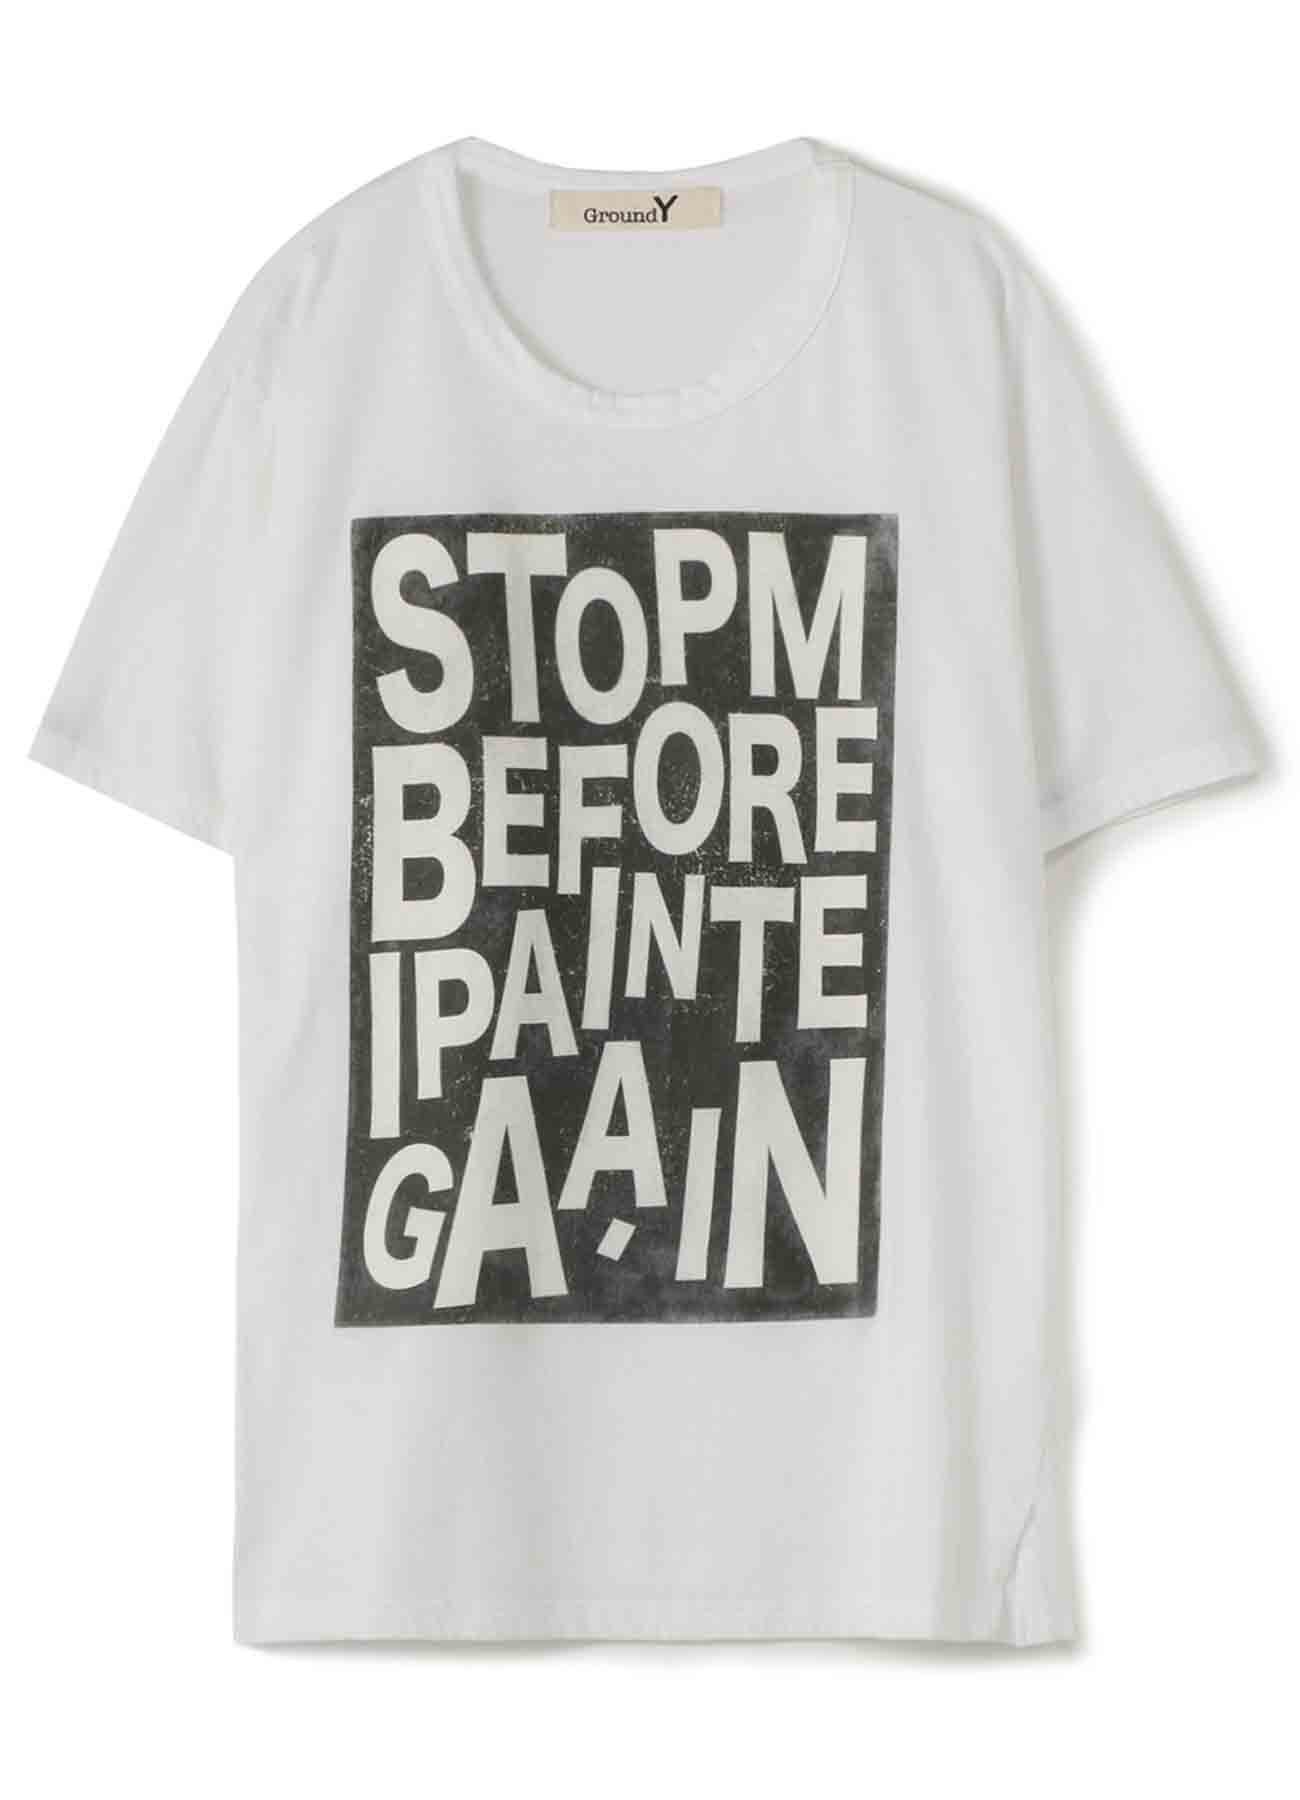 【THE SHOP Limited Edition】30/-Combed Cotton Jersey Graphic T 「STOP ME BEFORE I PAINT AGAIN.」